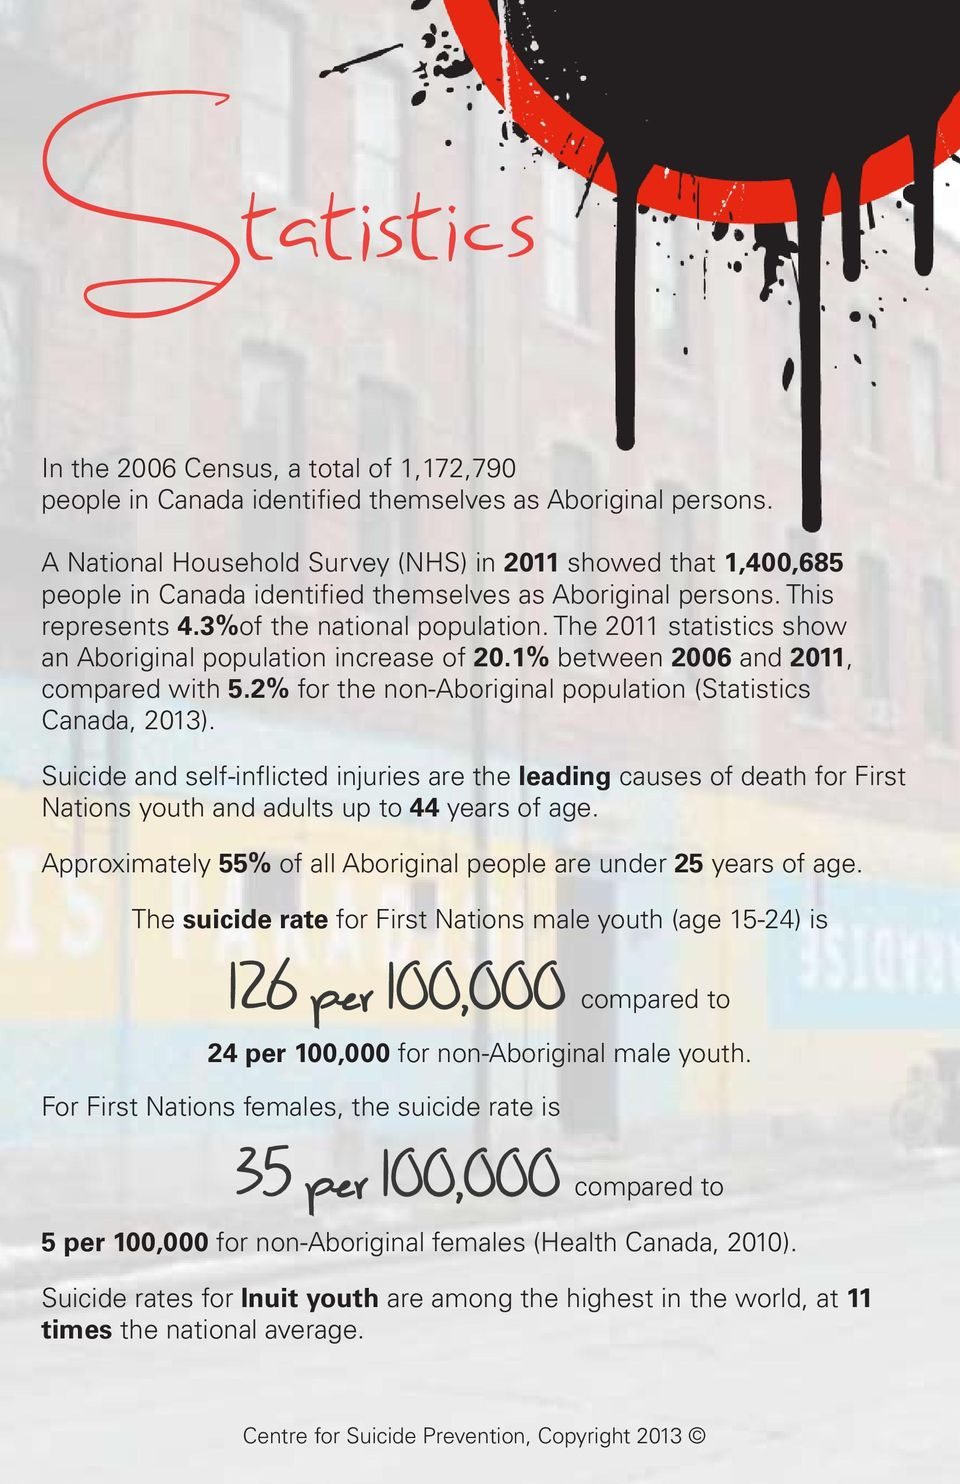 The 2011 statistics show an Aboriginal population increase of 20.1% between 2006 and 2011, compared with 5.2% for the non-aboriginal population (Statistics Canada, 2013).